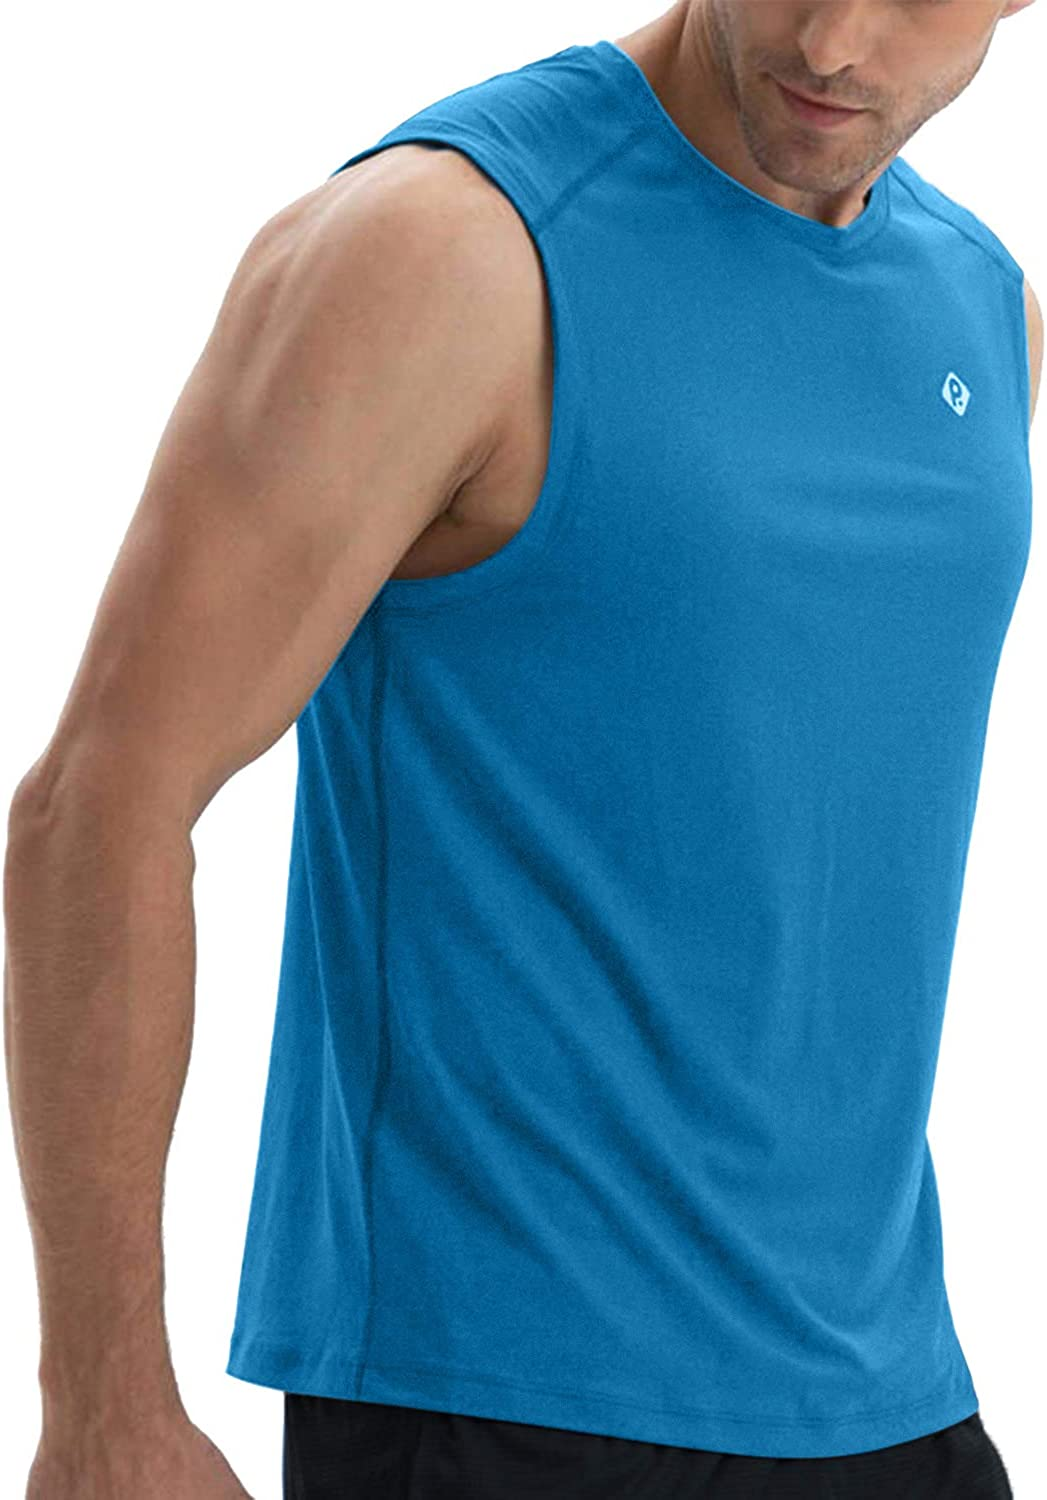 RlaGed Mens Performance Quick Dry Sleeveless Shirt for Athletic Muscle Bodybuilding Workout Sports Tank Tops